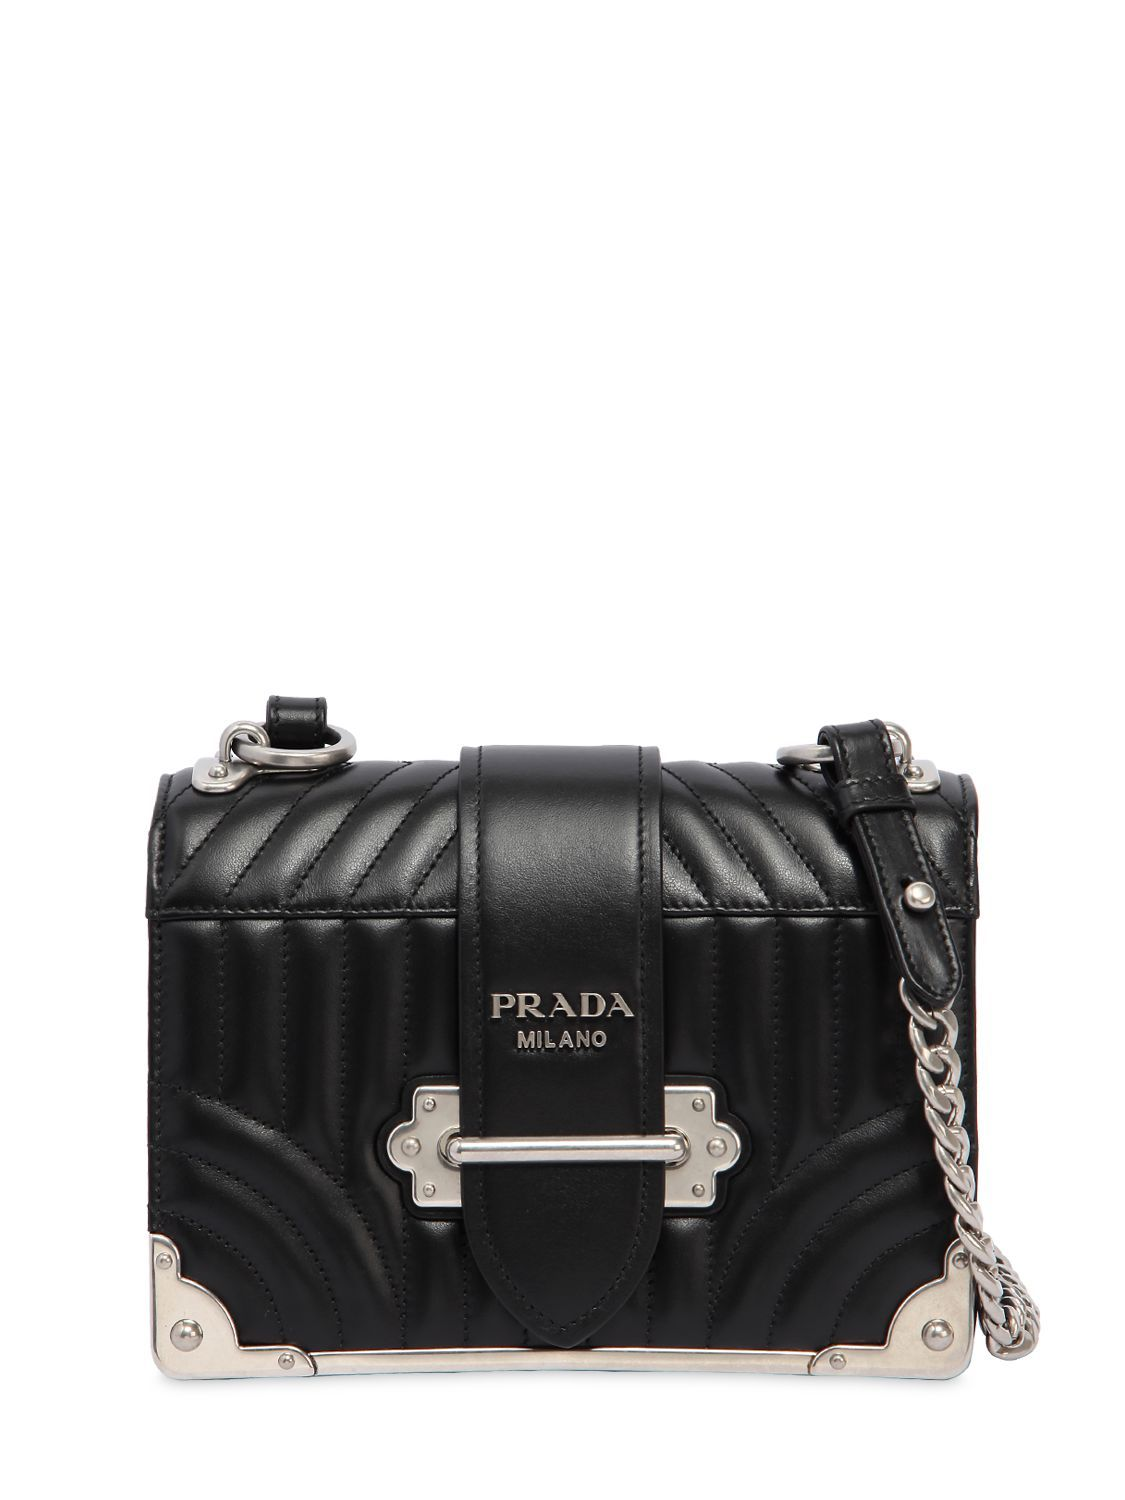 c5e60f84cf55 PRADA CAHIER QUILTED SOFT LEATHER SHOULDER BAG. #prada #bags #shoulder bags  #leather #